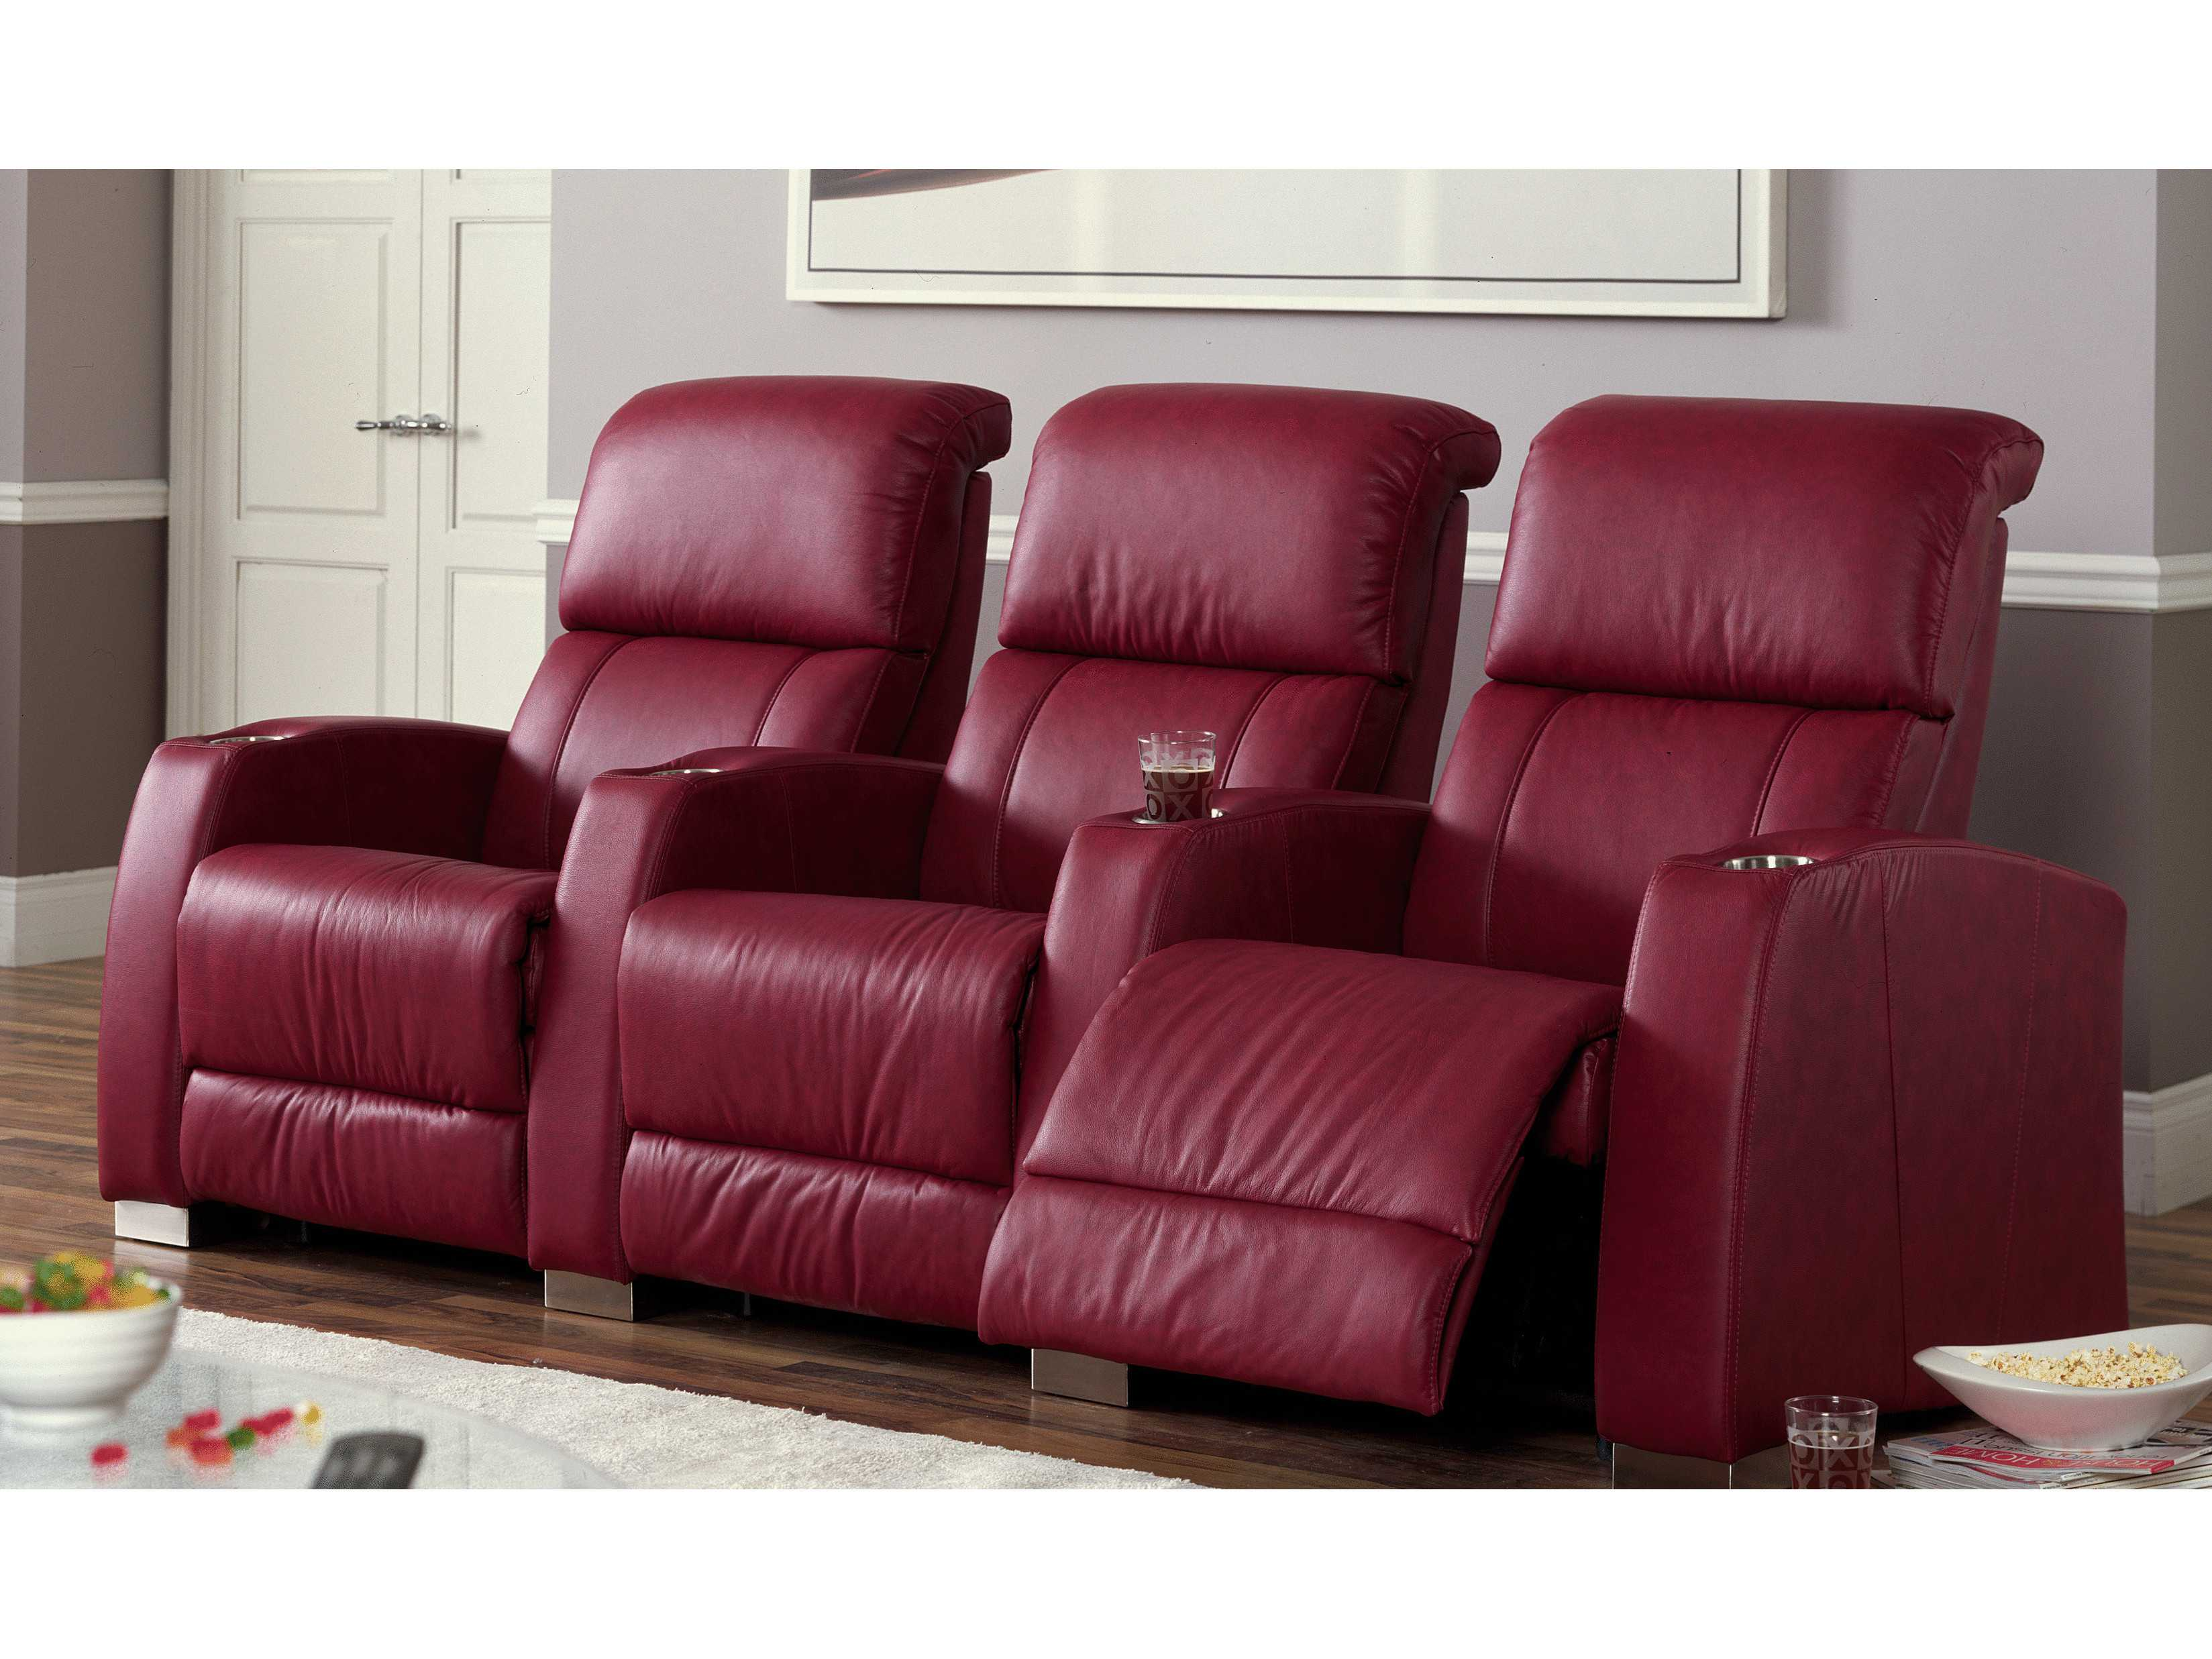 2 seat theater chairs bed bath and beyond armchair covers palliser hifi hts manual reclining home sectional